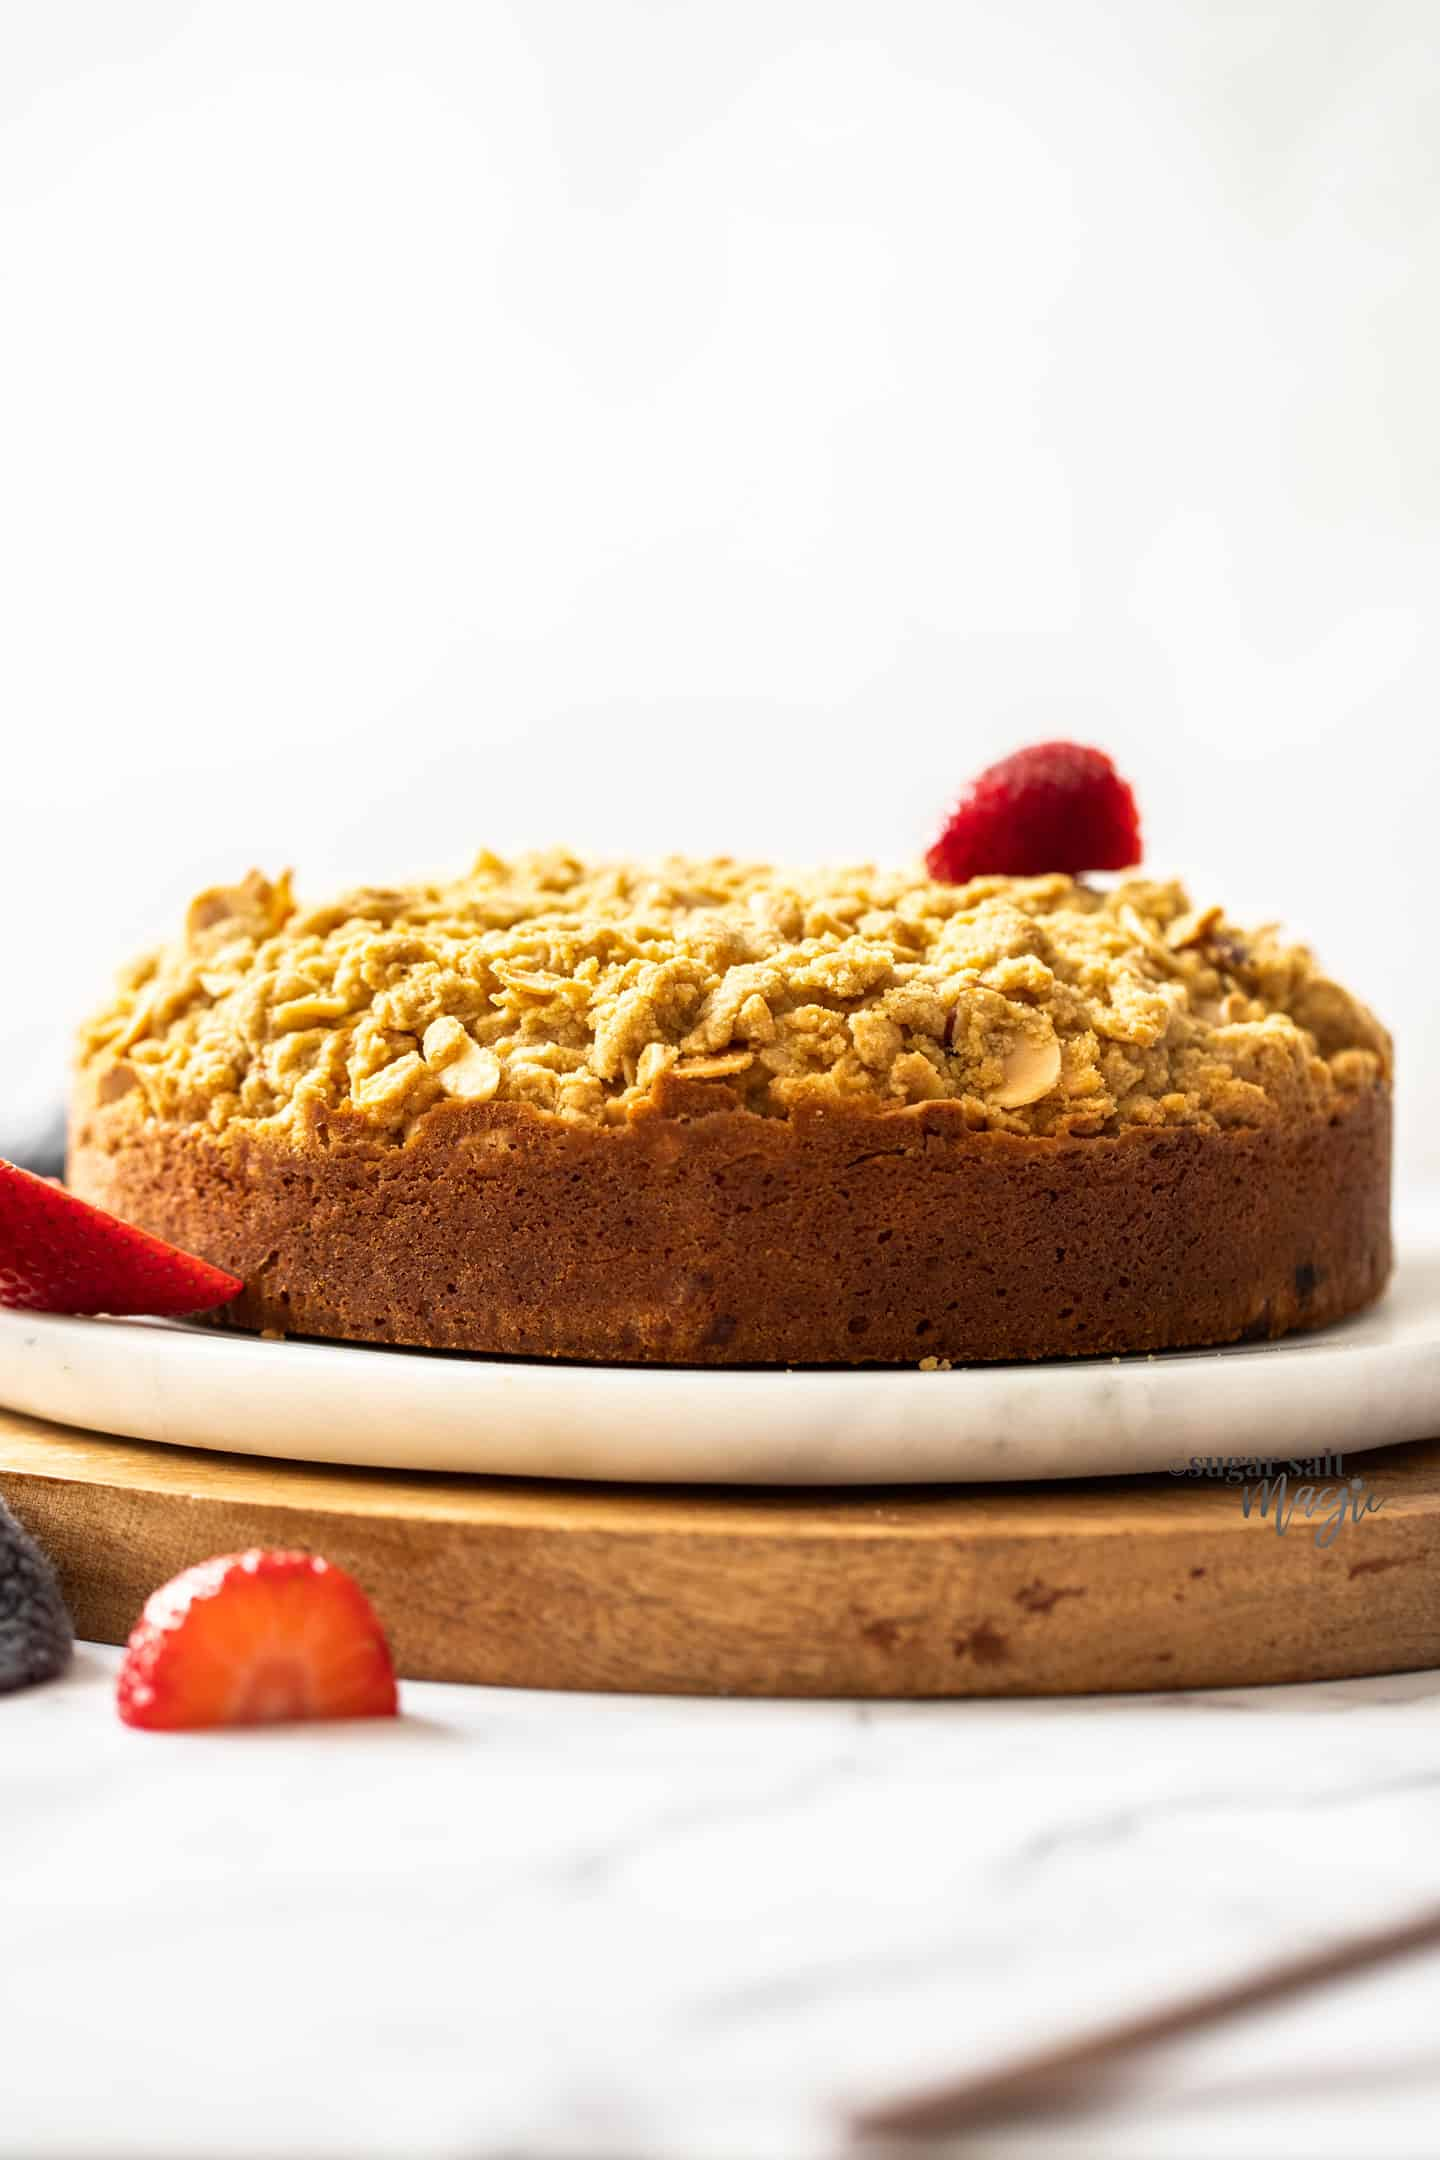 Side view of a cake with crumble topping